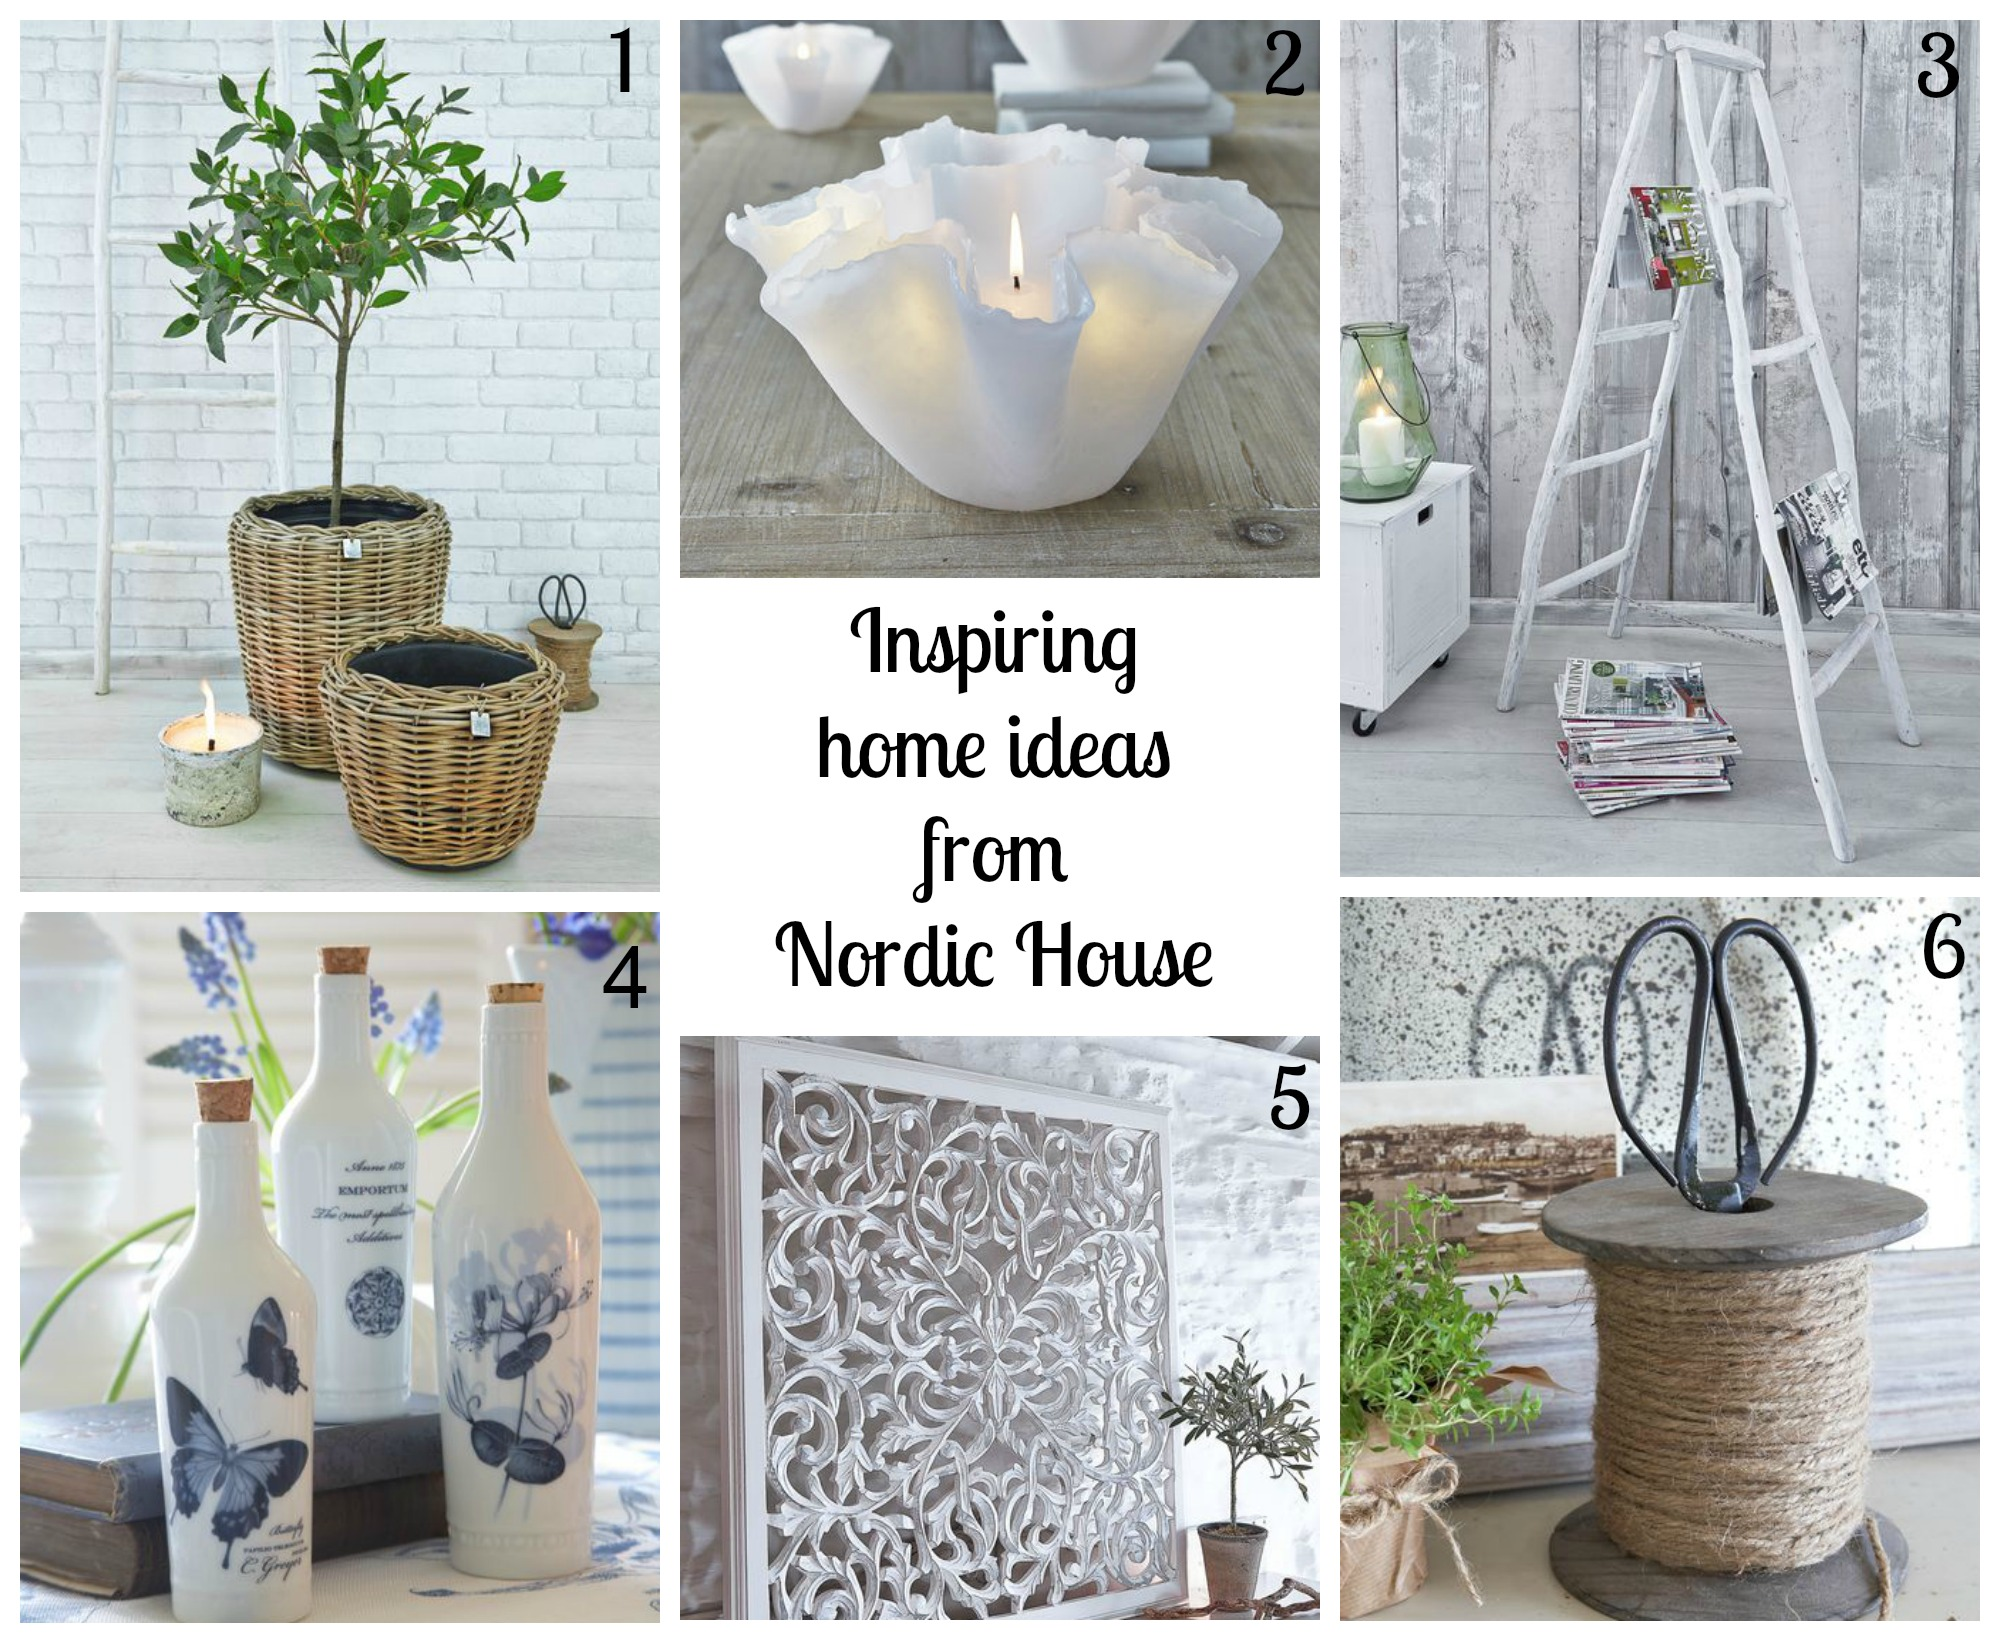 Relaxed Scandi style home ideas from Nordic House | | Cosy Home Blog